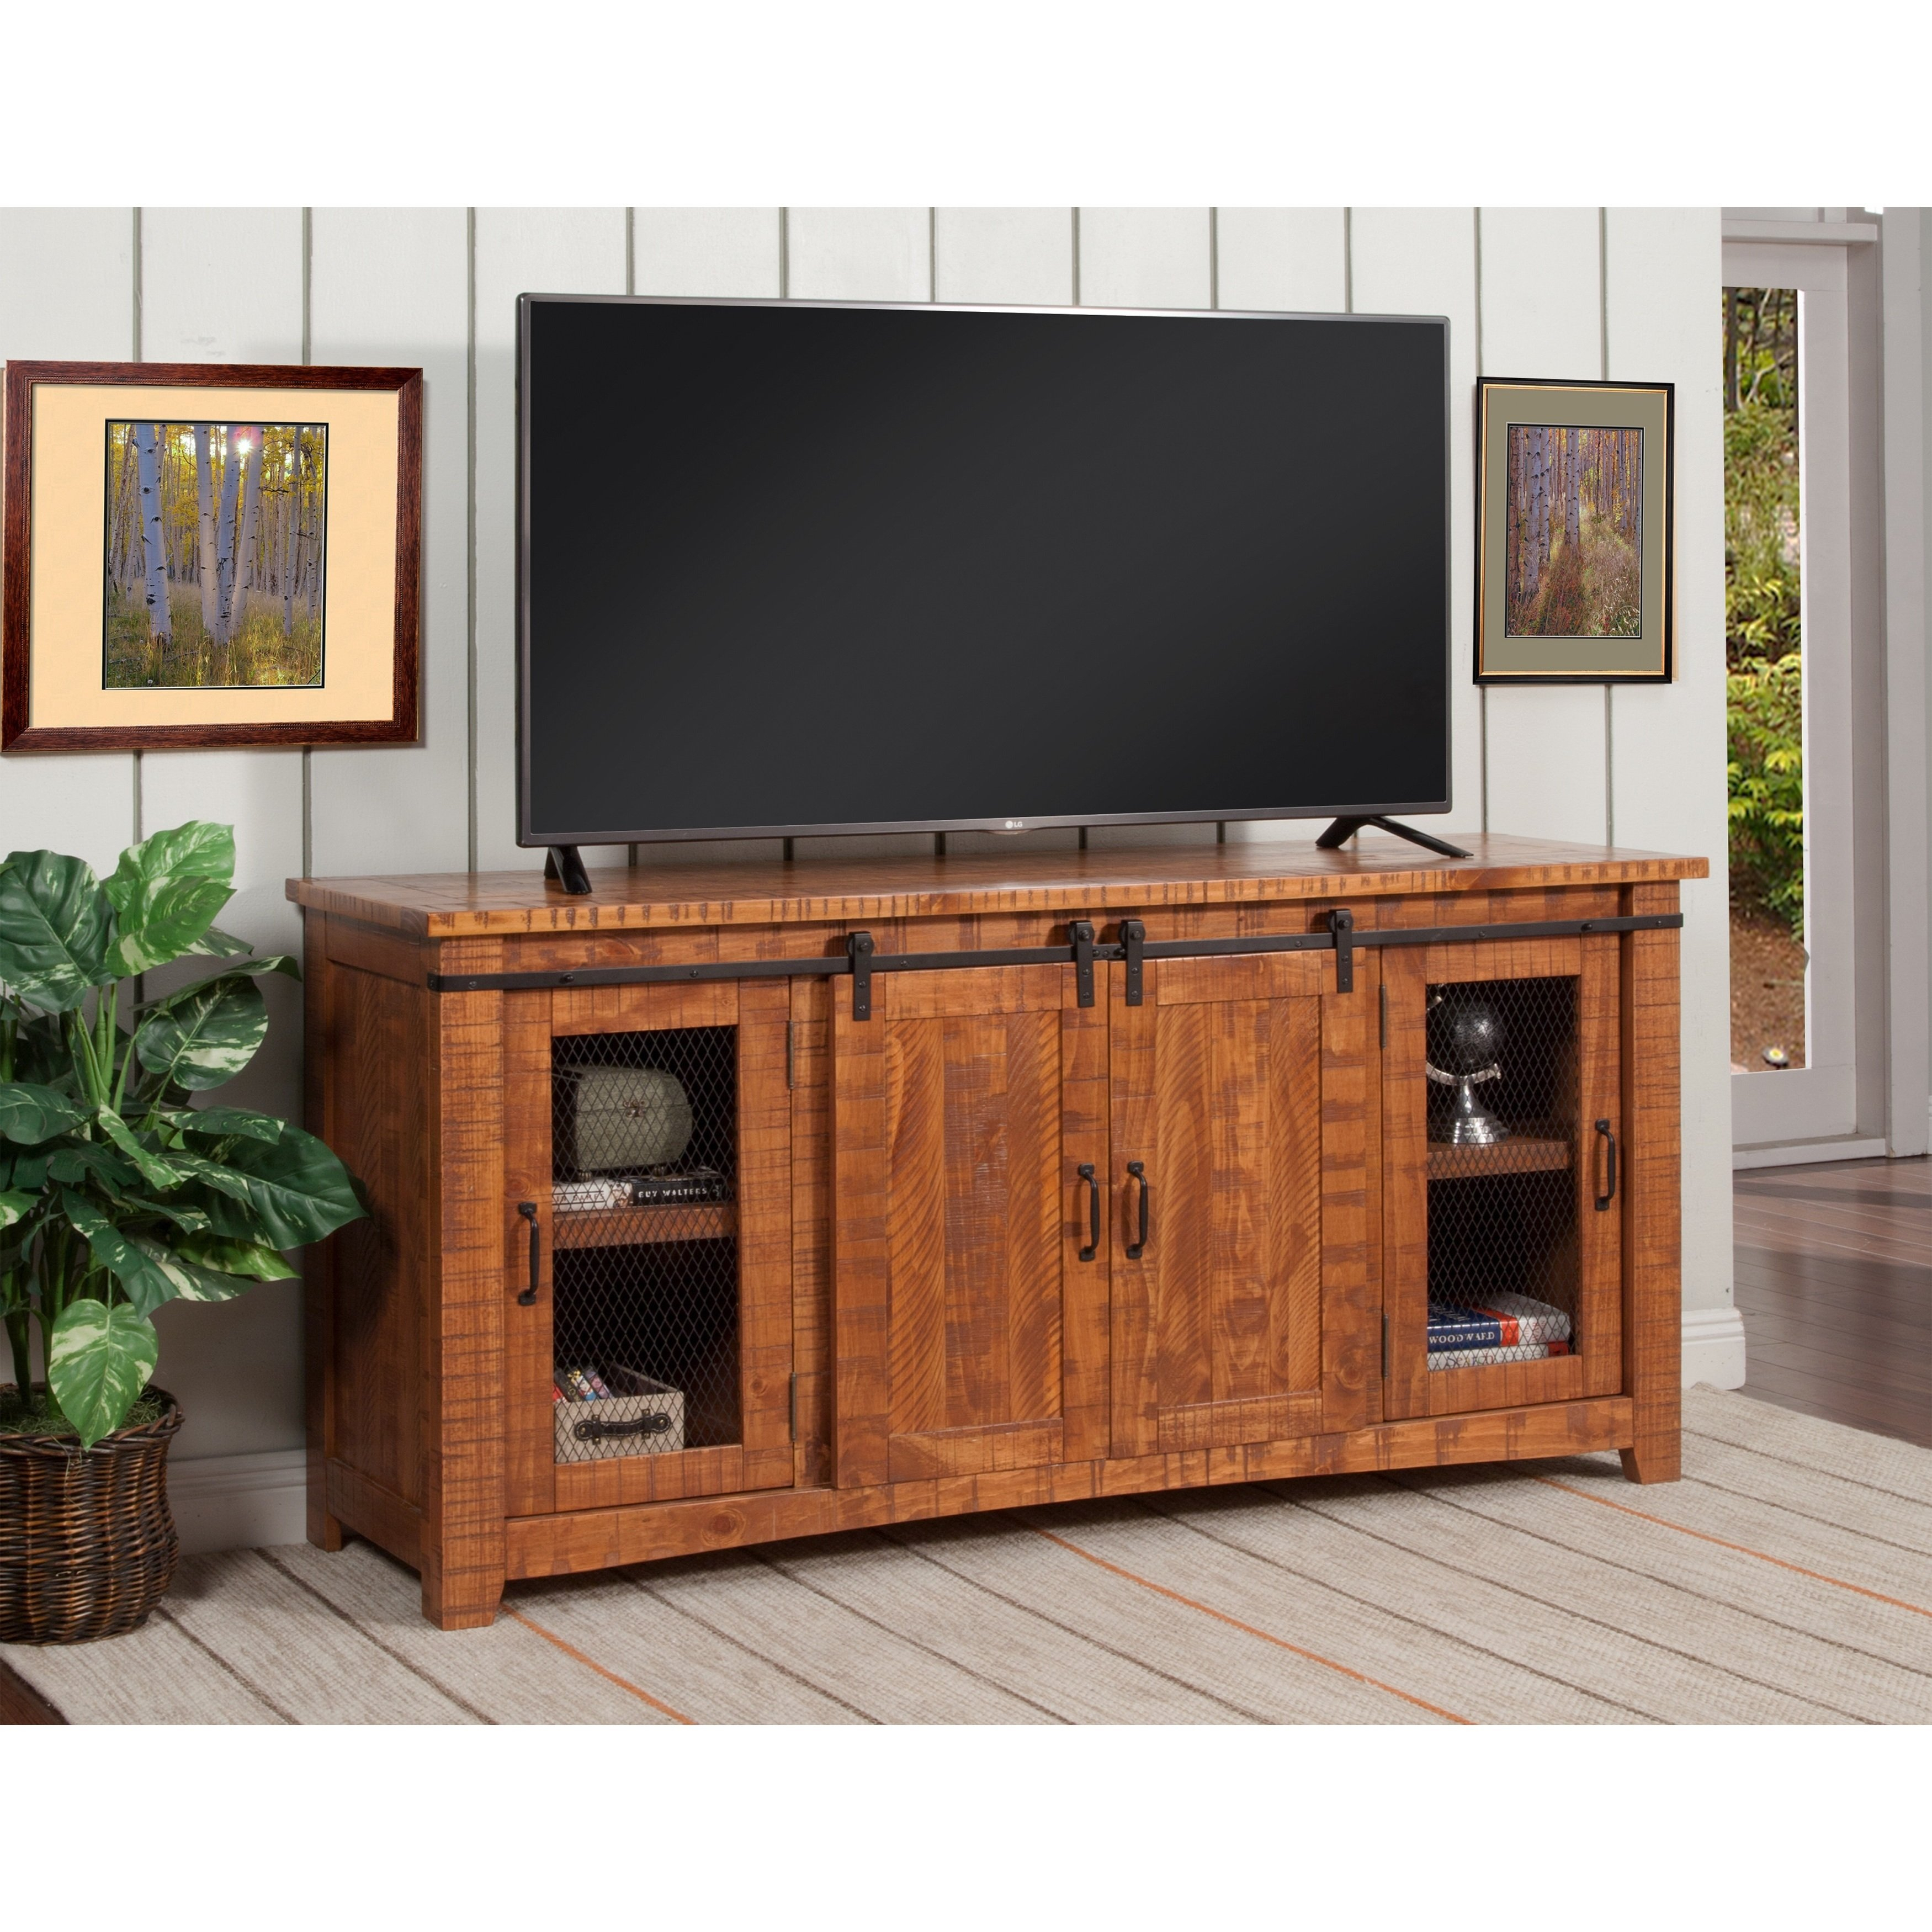 65 Inch Tv Stands Brown | Www.tollebild in Melrose Barnhouse Brown 65 Inch Lowboy Tv Stands (Image 9 of 30)